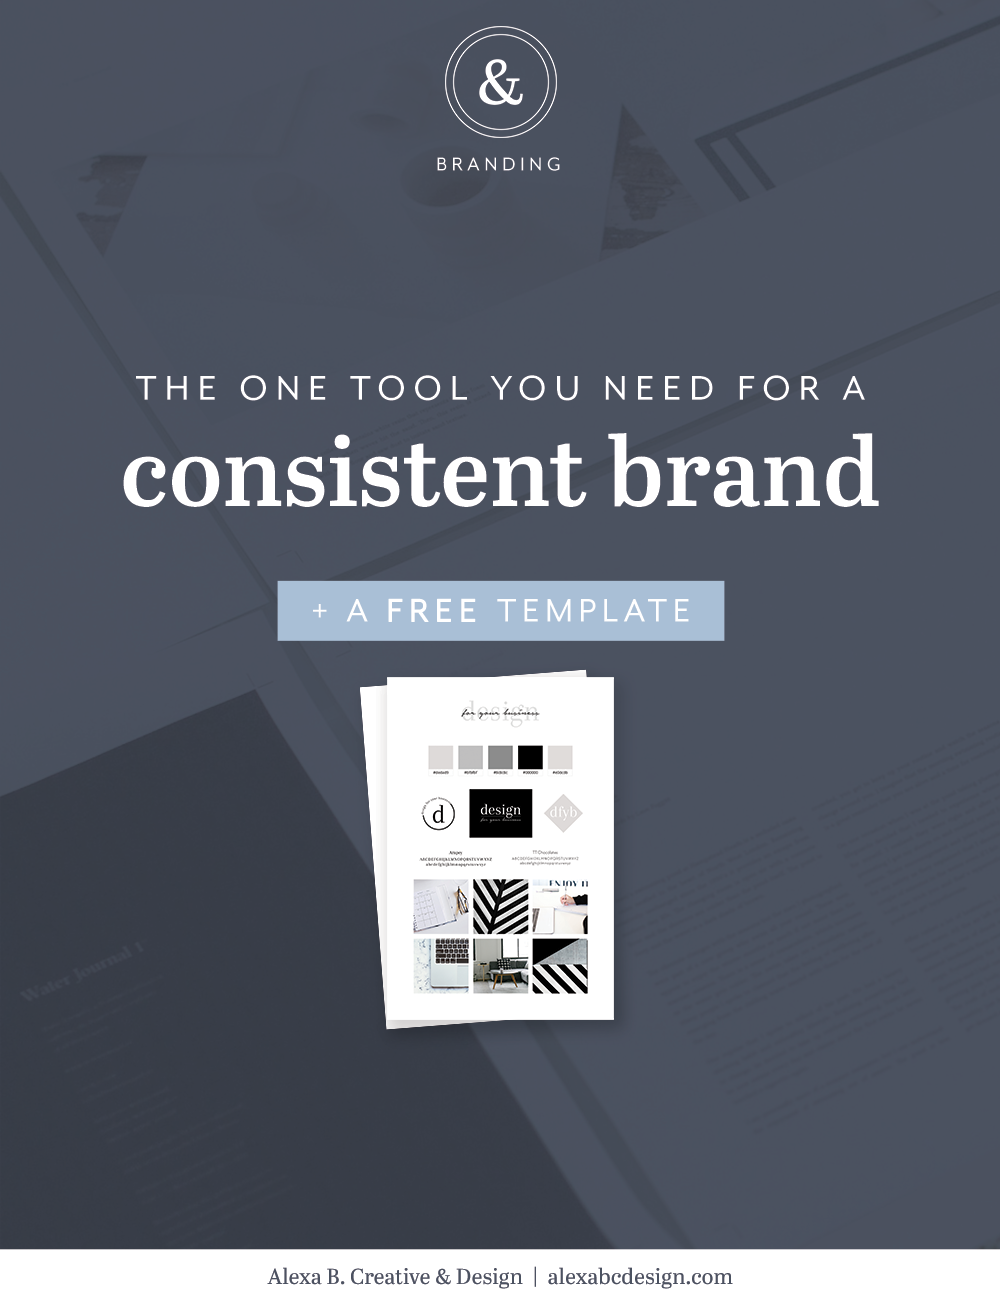 The one tool you need for a consistent brand + a FREE template · Alexa B. Creative & Design